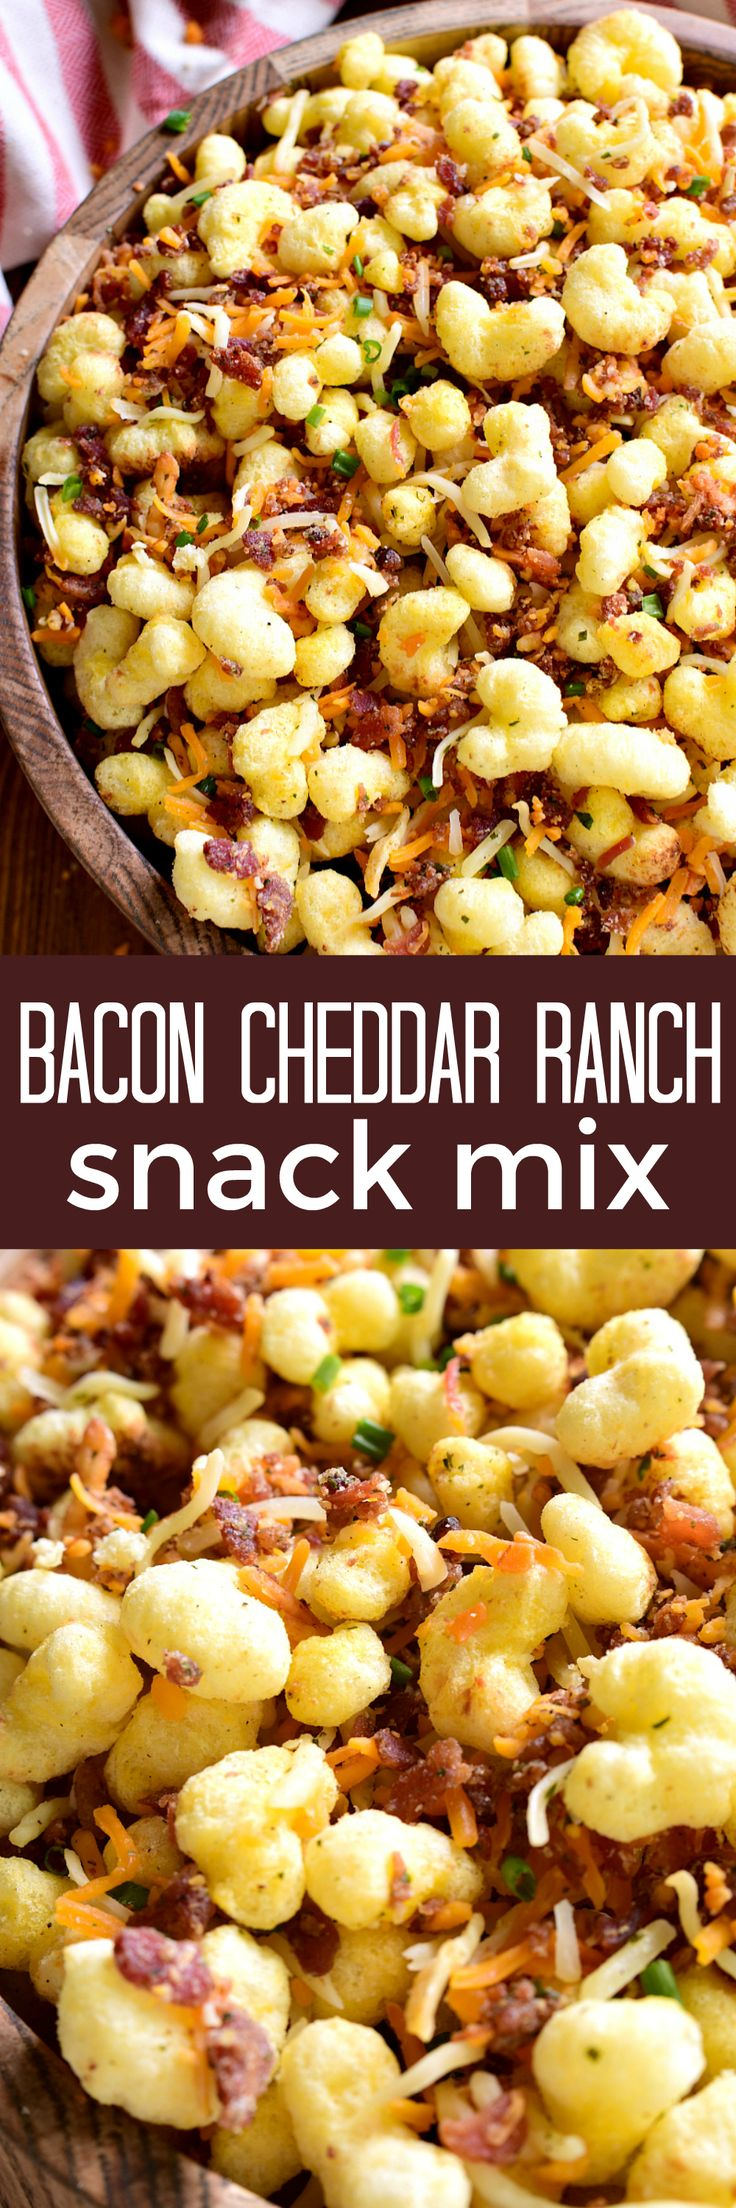 This Bacon Cheddar Ranch Snack Mix combines all the best flavors in one delicious mix! Made with just 5 ingredients, it comes together quickly and is perfect for game day! #ad